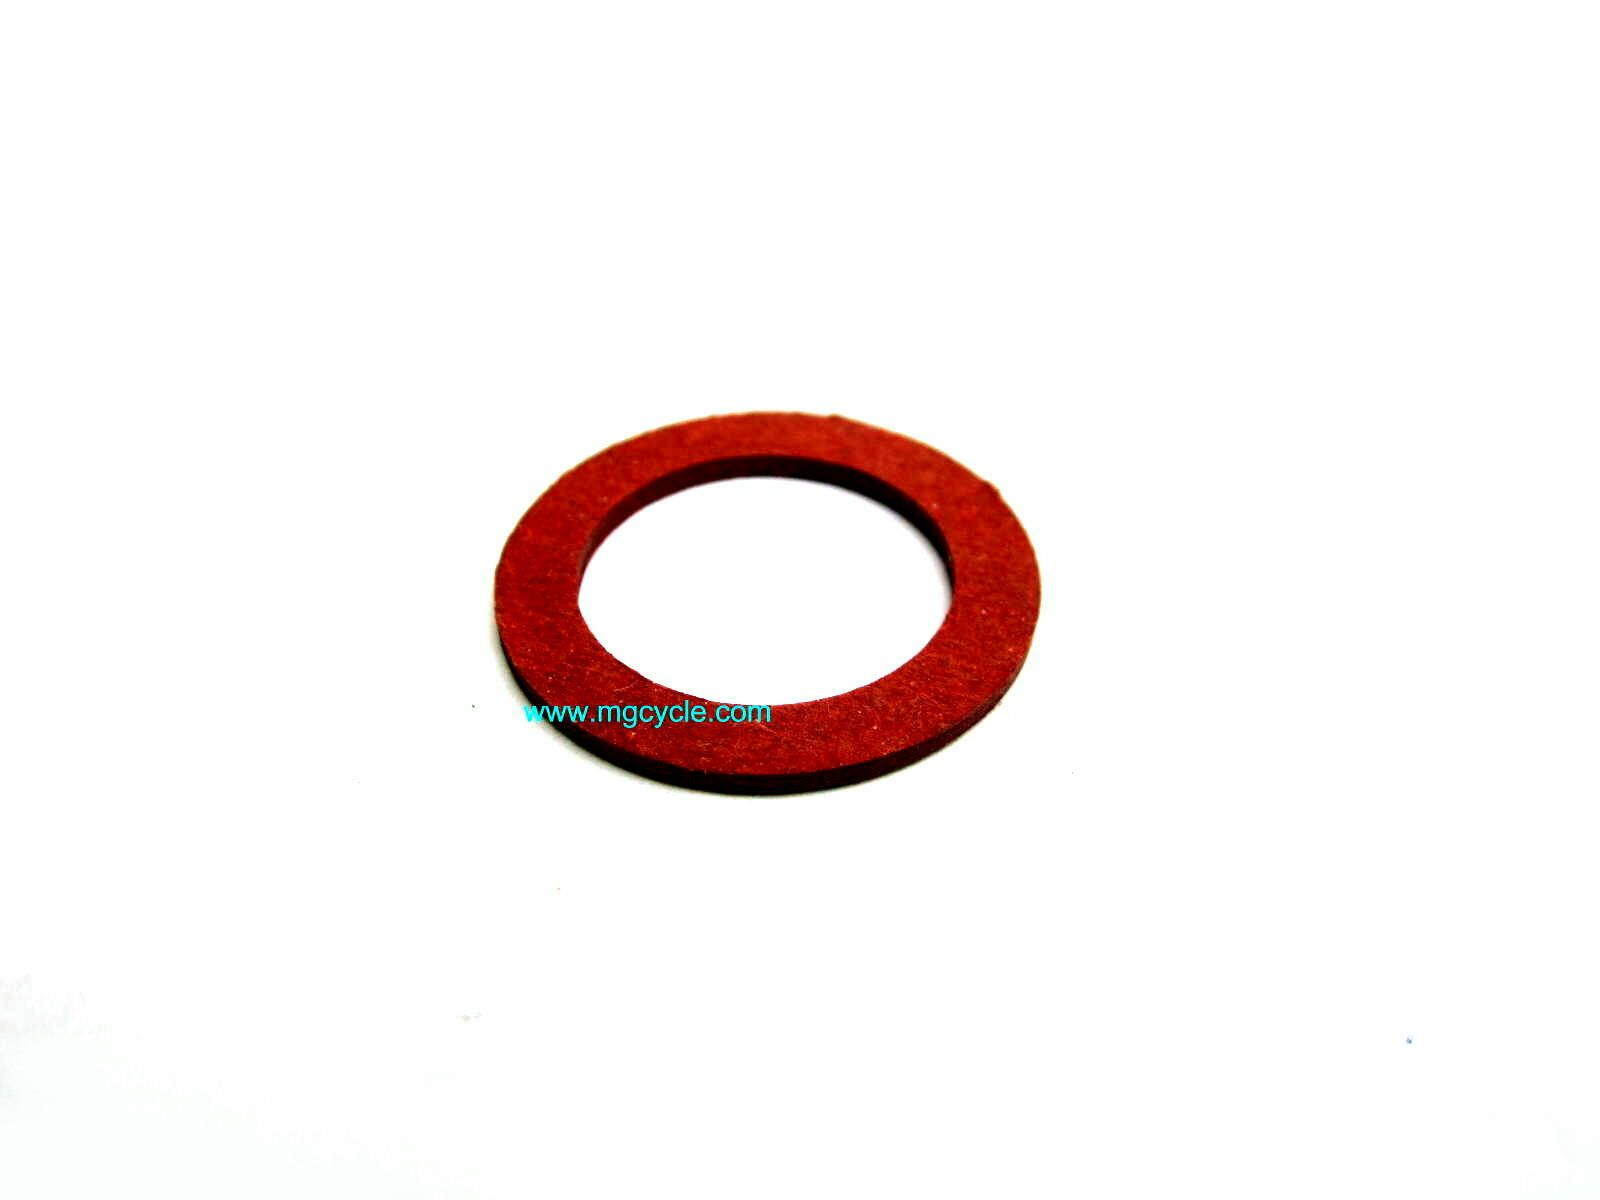 20mm fiber washer for fill, drain plugs PHM/PHF bowl nut gasket